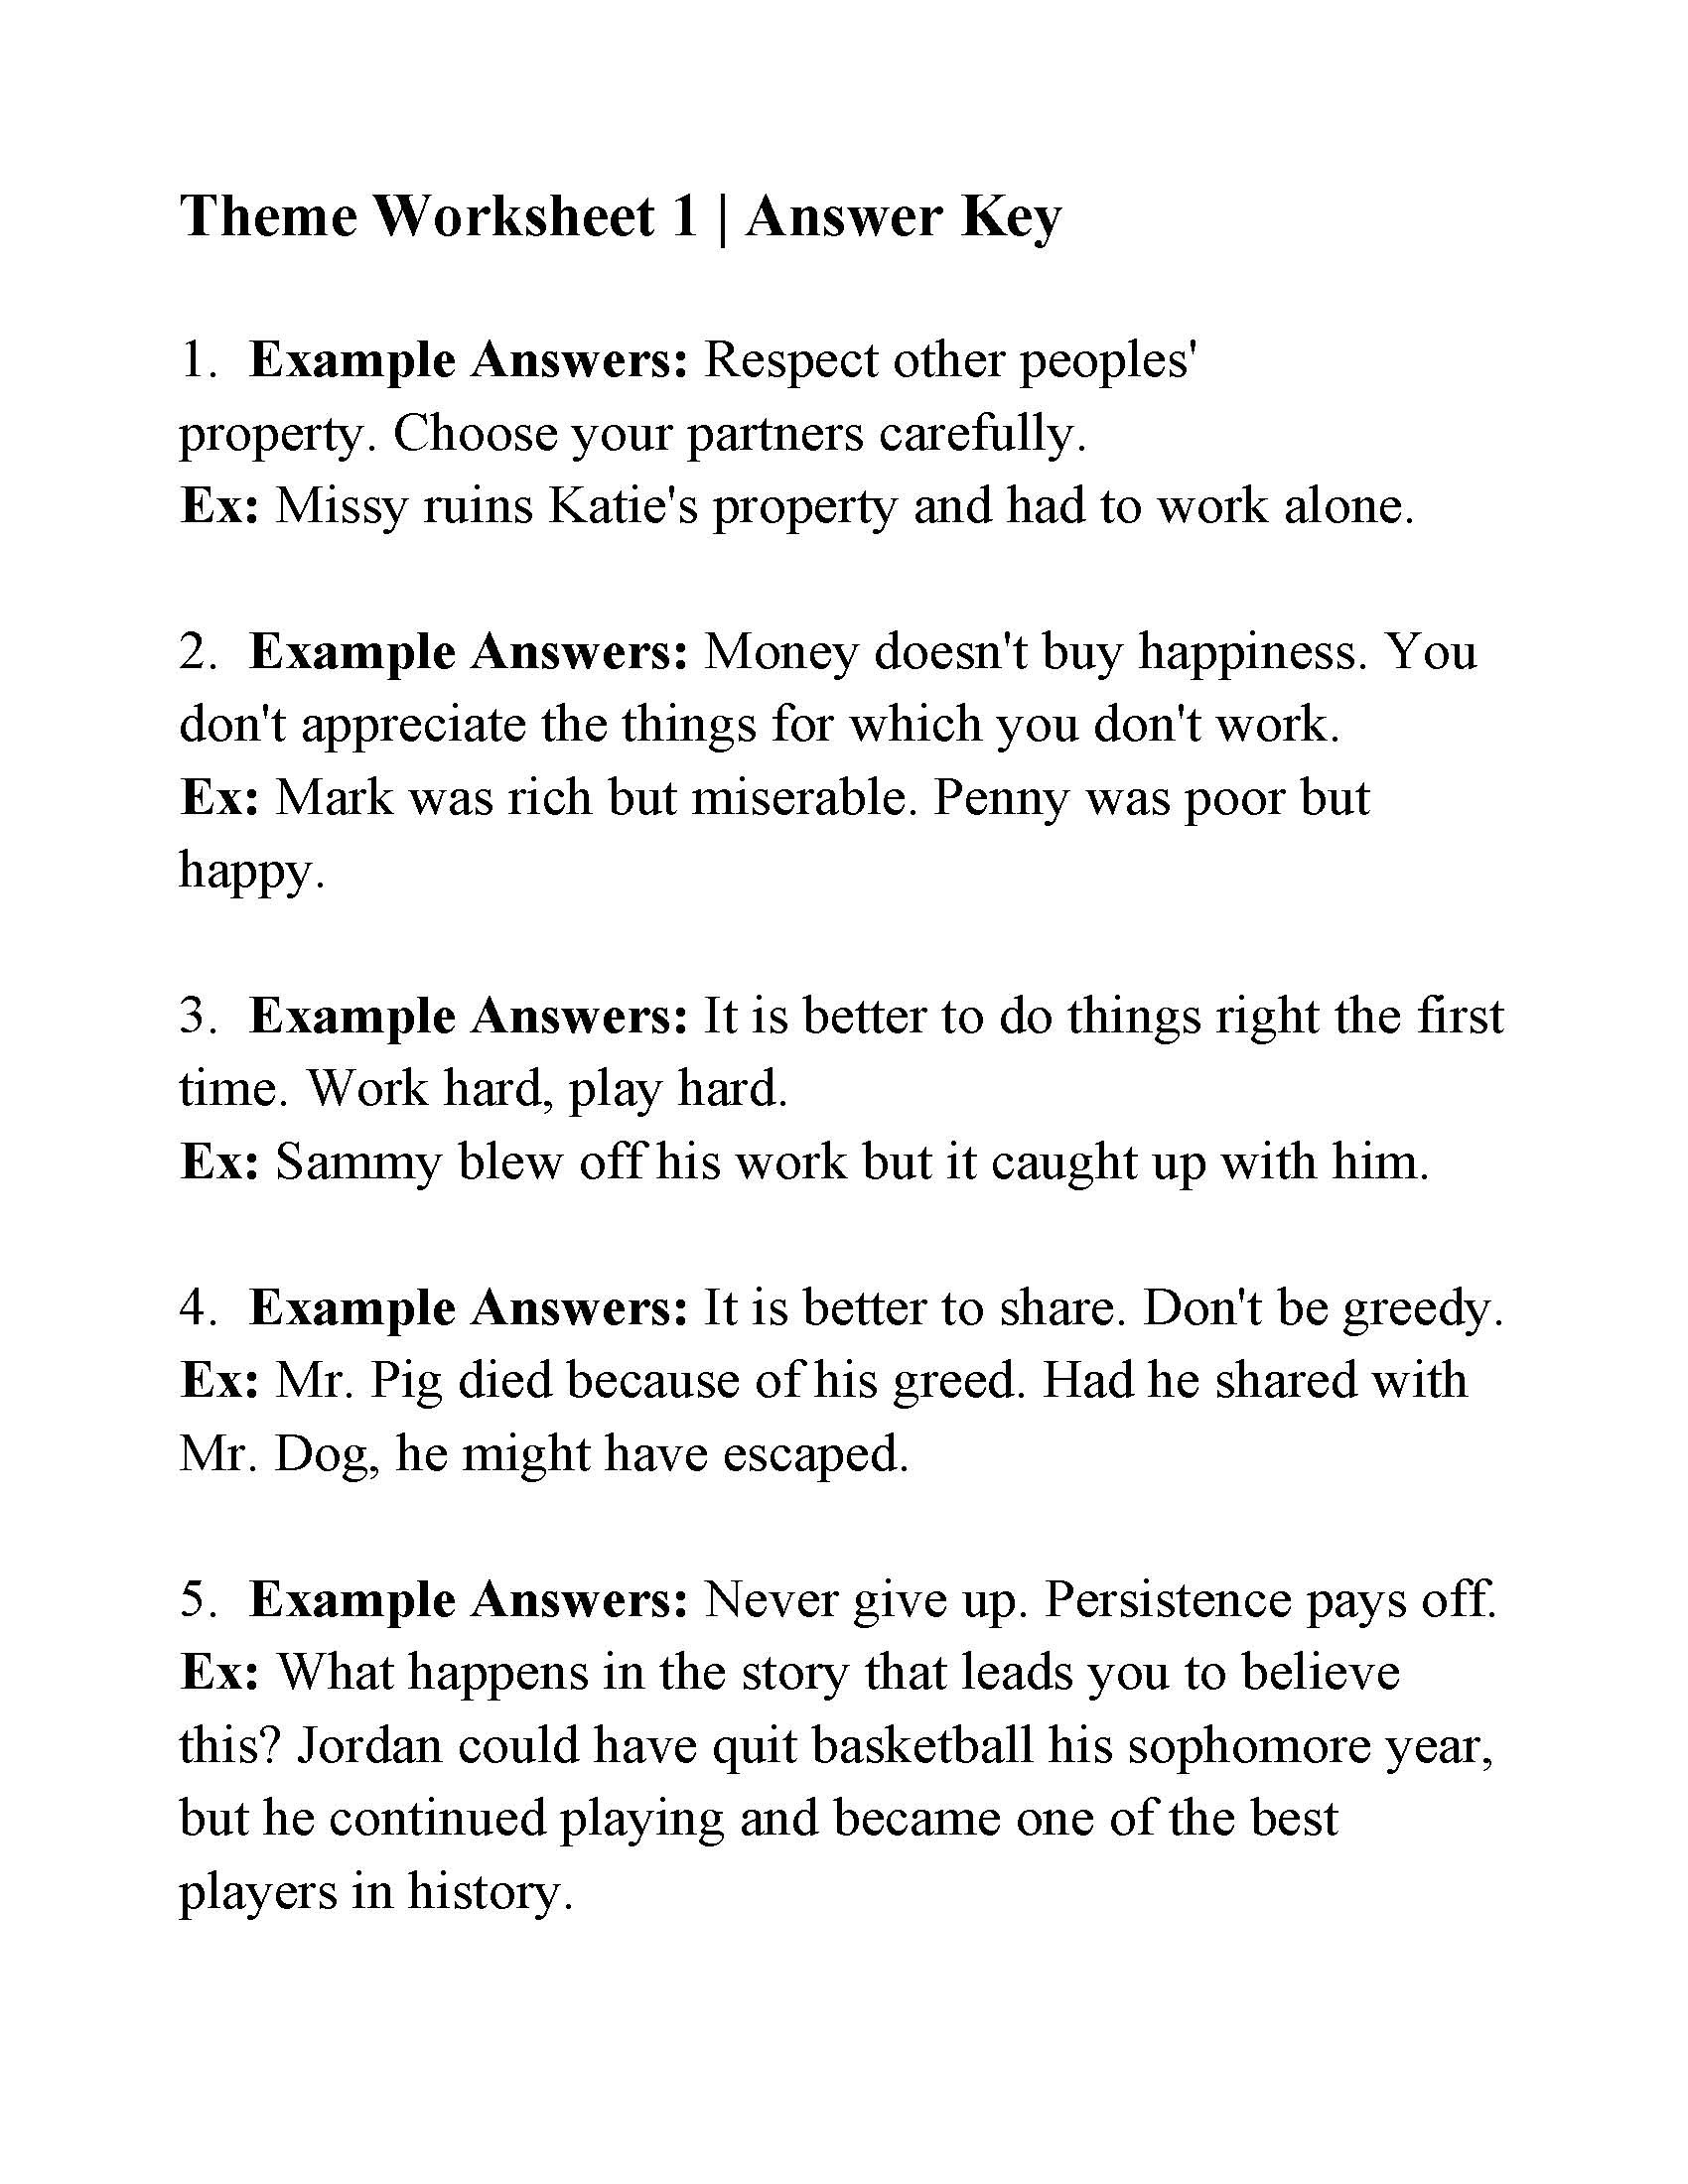 Theme Worksheets High School theme Worksheet 1